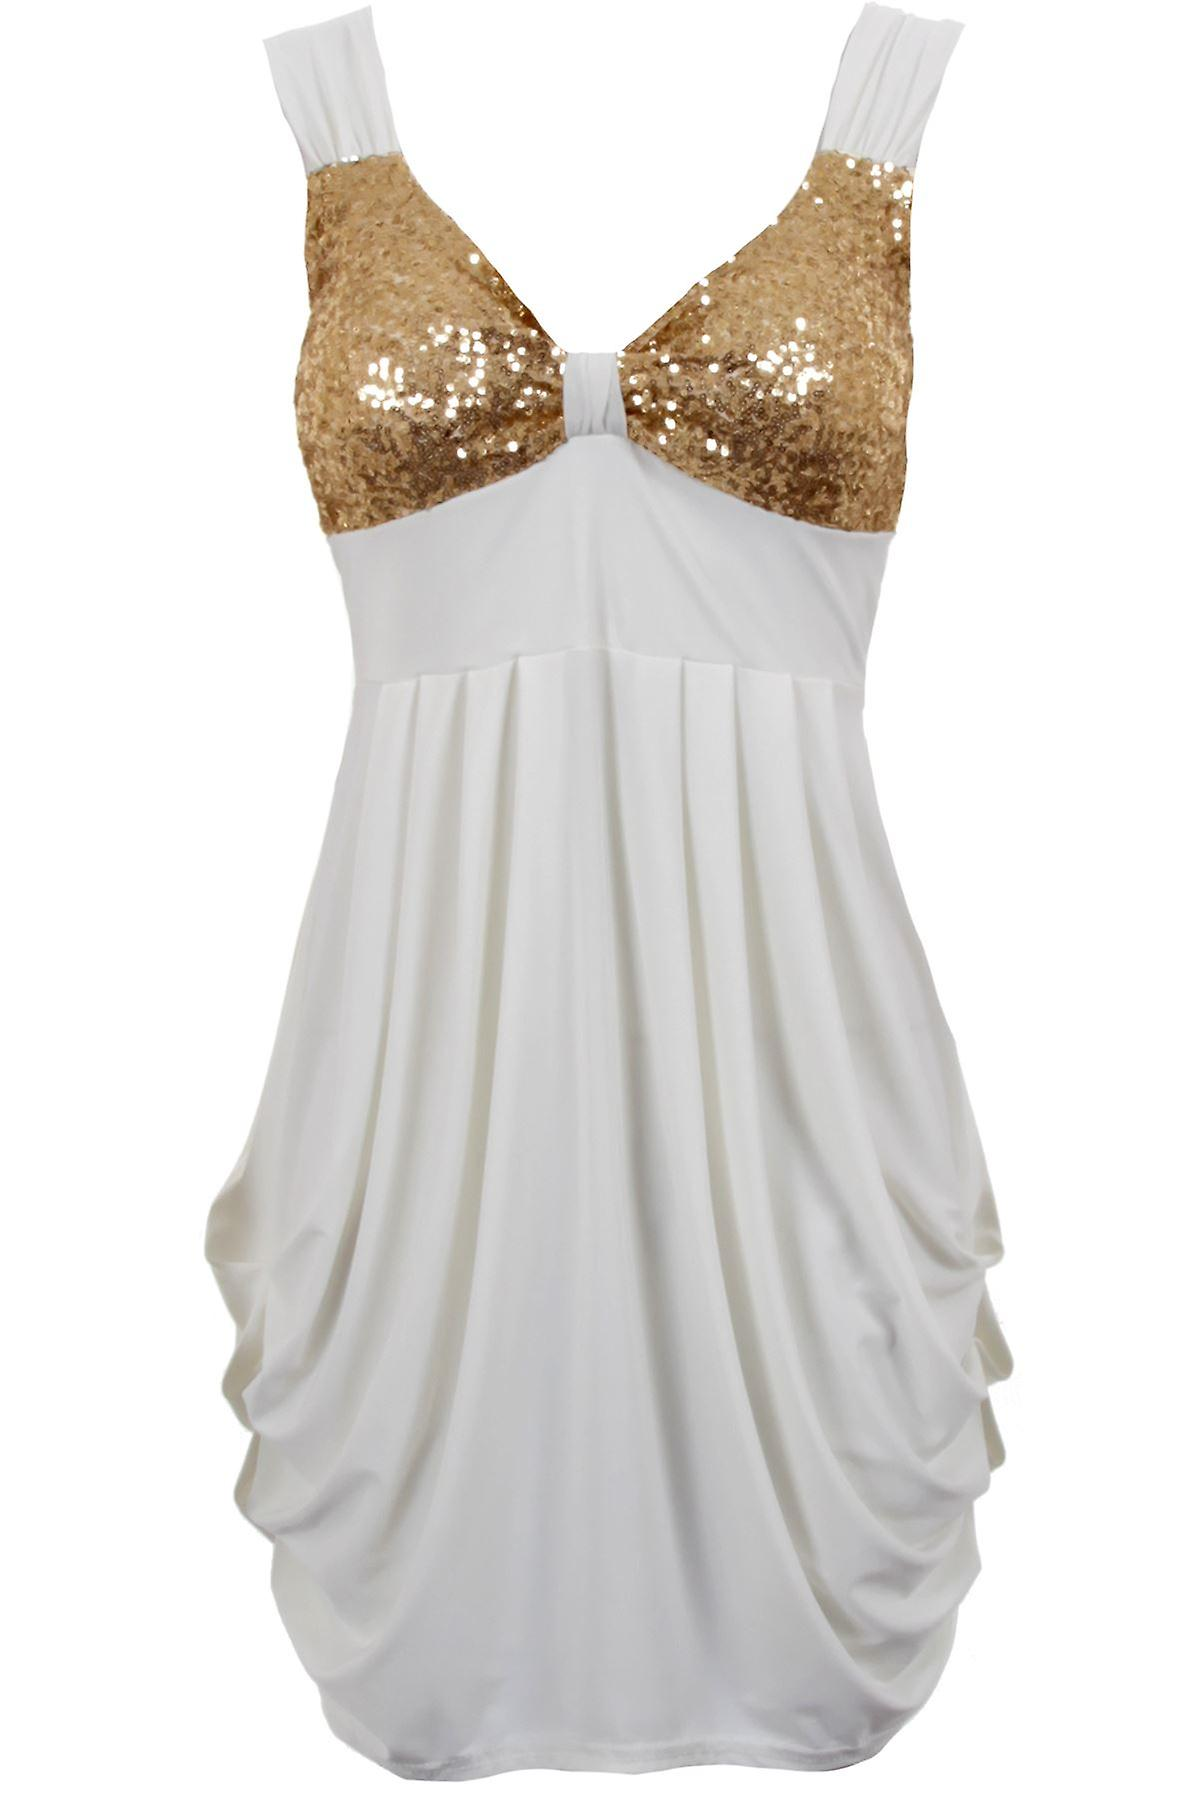 Ladies Silver Gold Sequin Padded Bra Cup Gathered Short Womens Dress